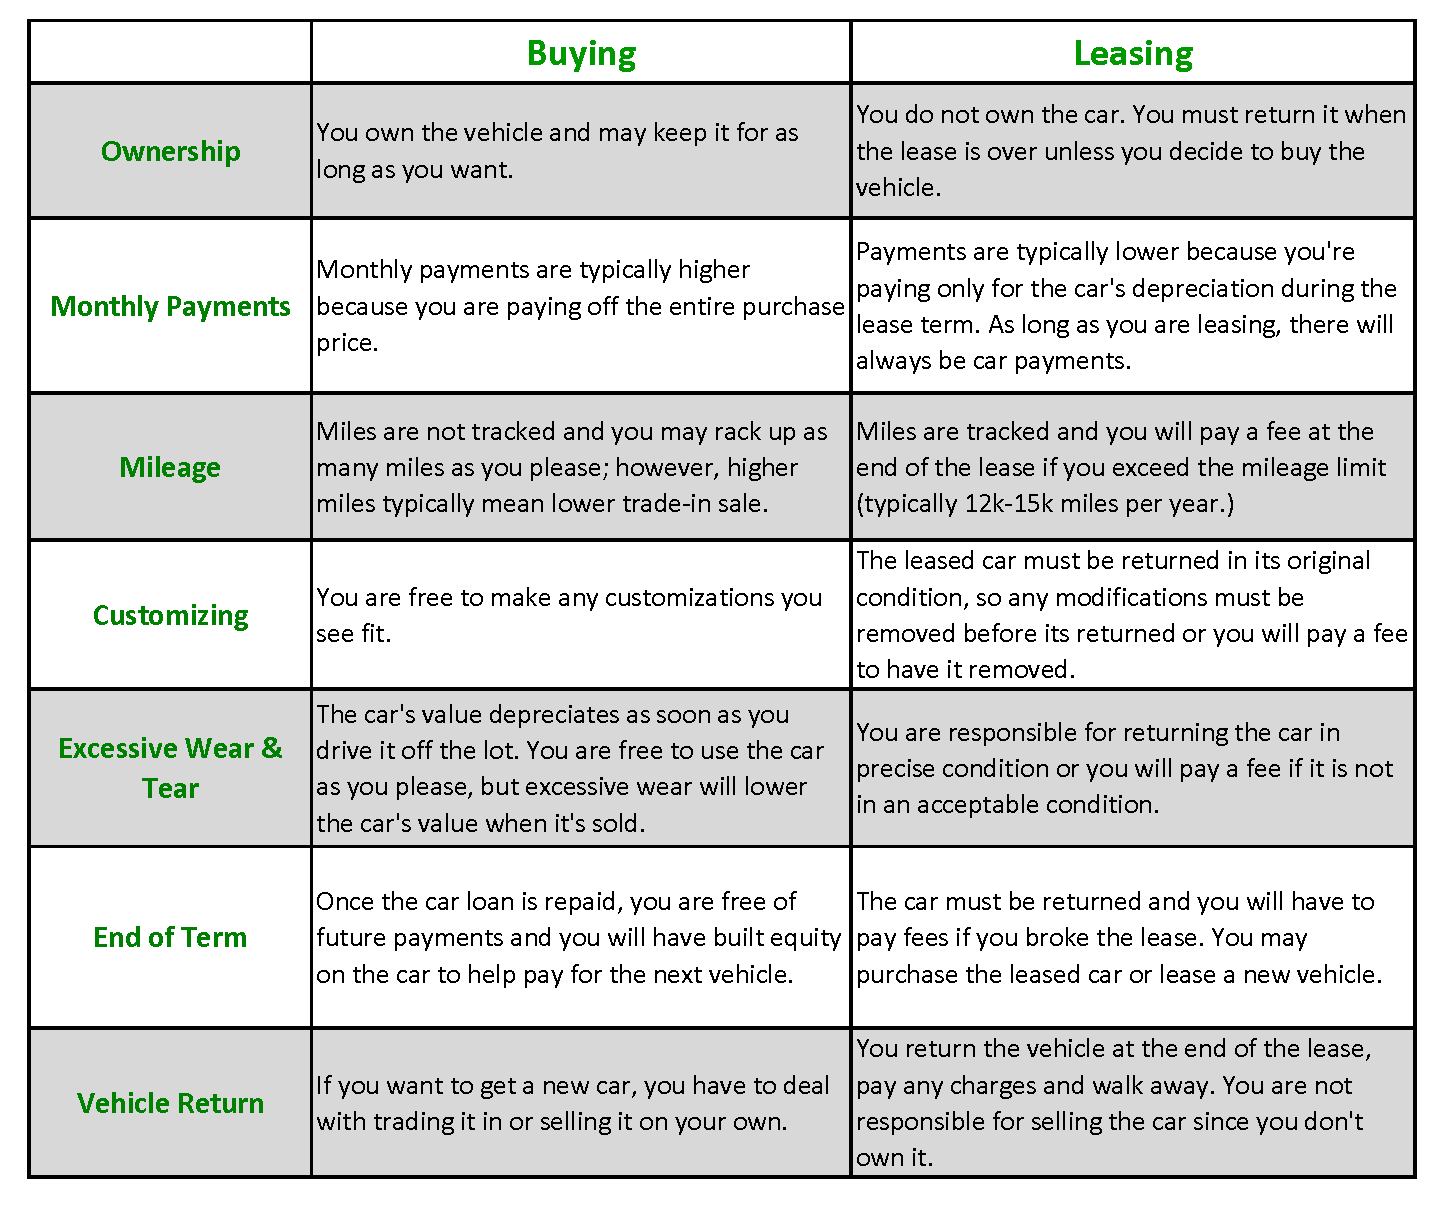 What'S The Difference Between Financing And Leasing A Car >> What S The Difference Between Leasing And Buying A Car